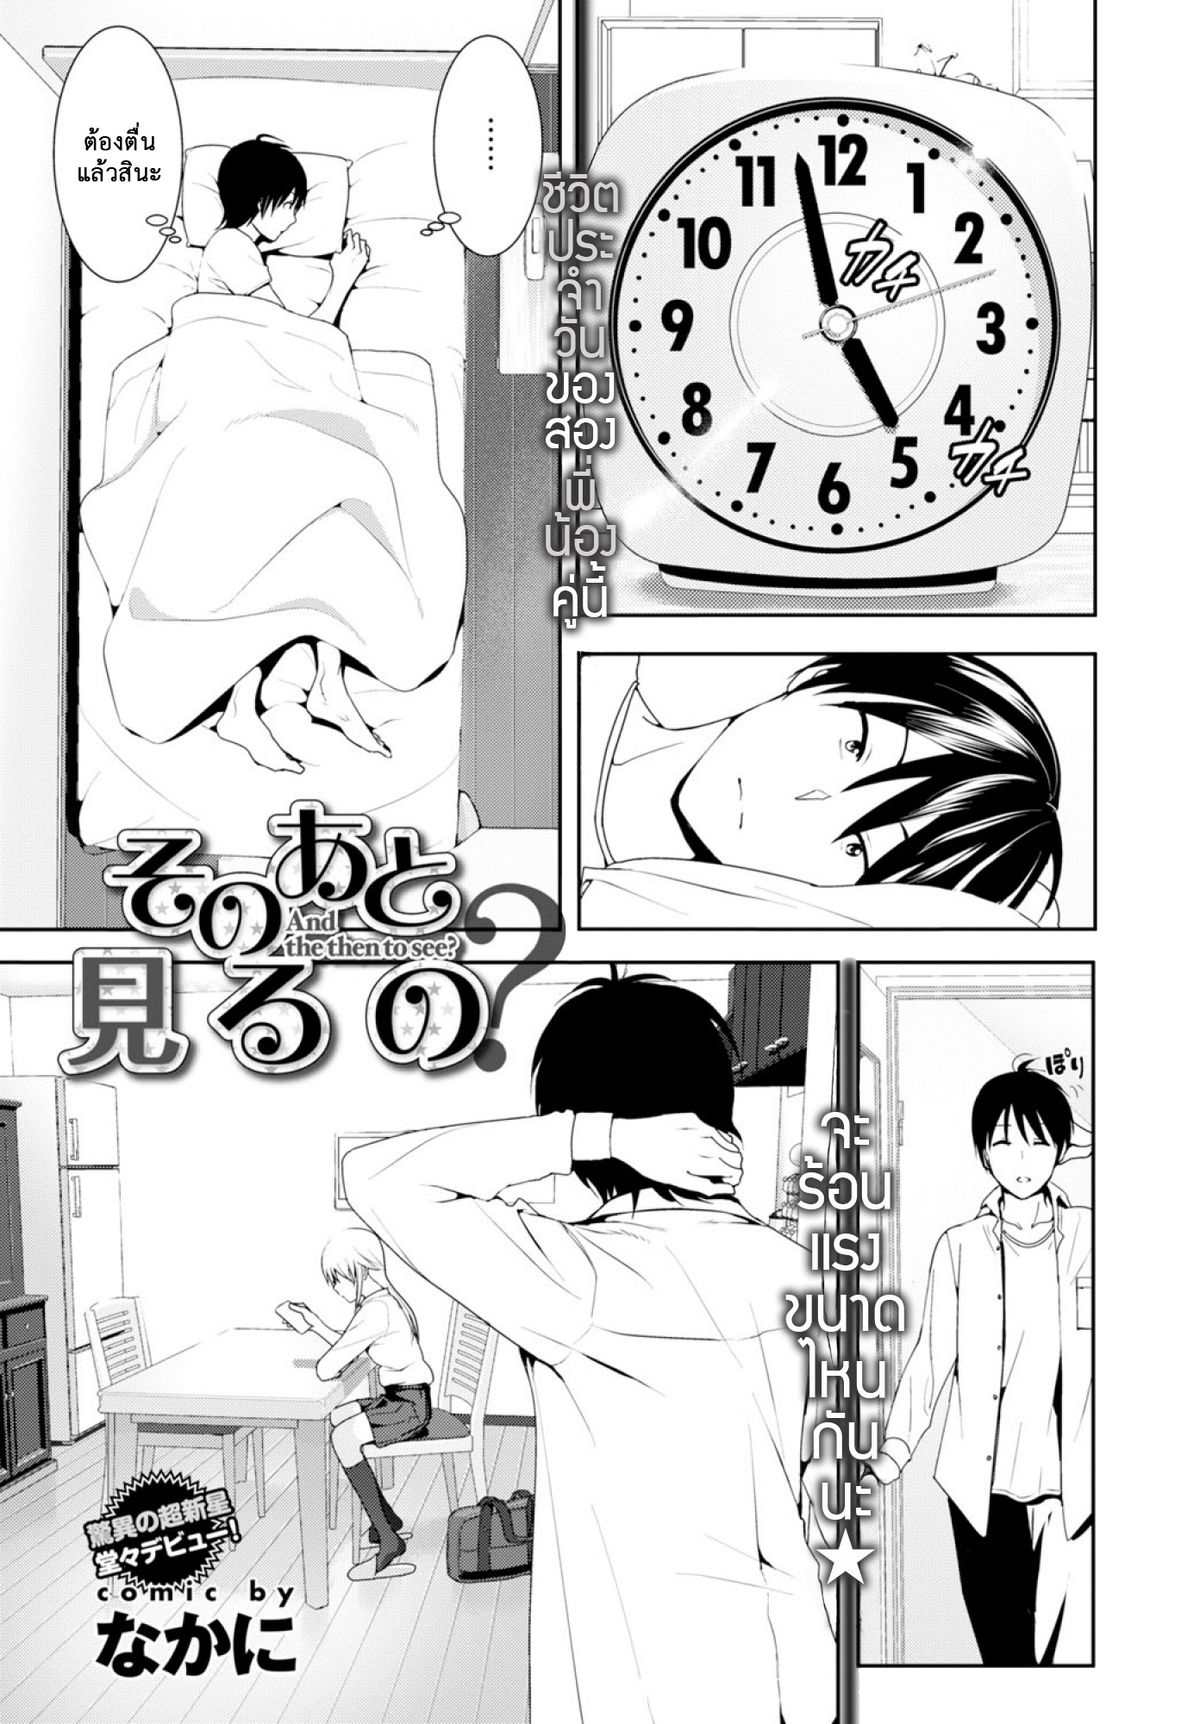 Sono ato Miru no? - And the Then to See ? (COMIC BAVEL 2015-02) หน้าที่ 1